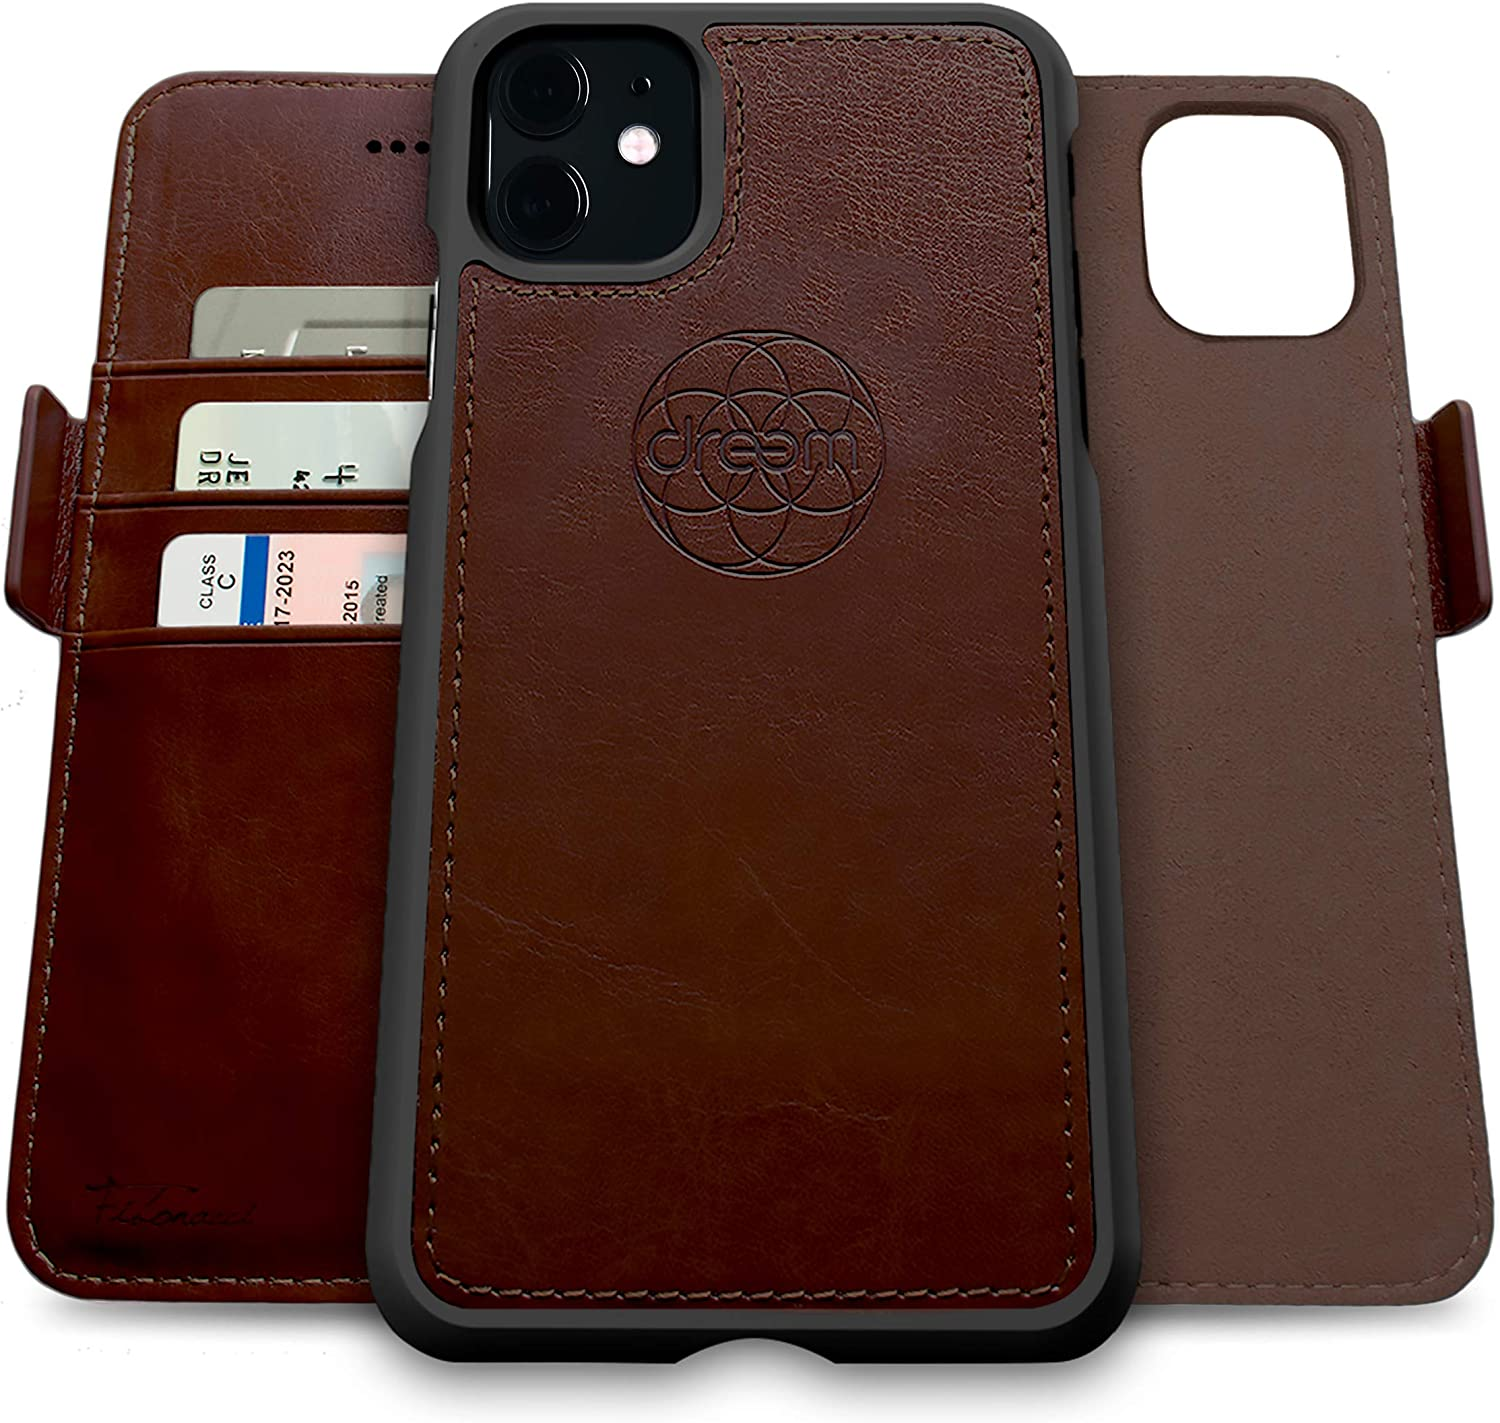 Dreem Fibonacci 2-in-1 Wallet-Case for Apple iPhone 11 - Luxury Vegan Leather, Magnetic Detachable Shockproof Phone Case, RFID Card Protection, 2-Way Flip Stand - Coffee